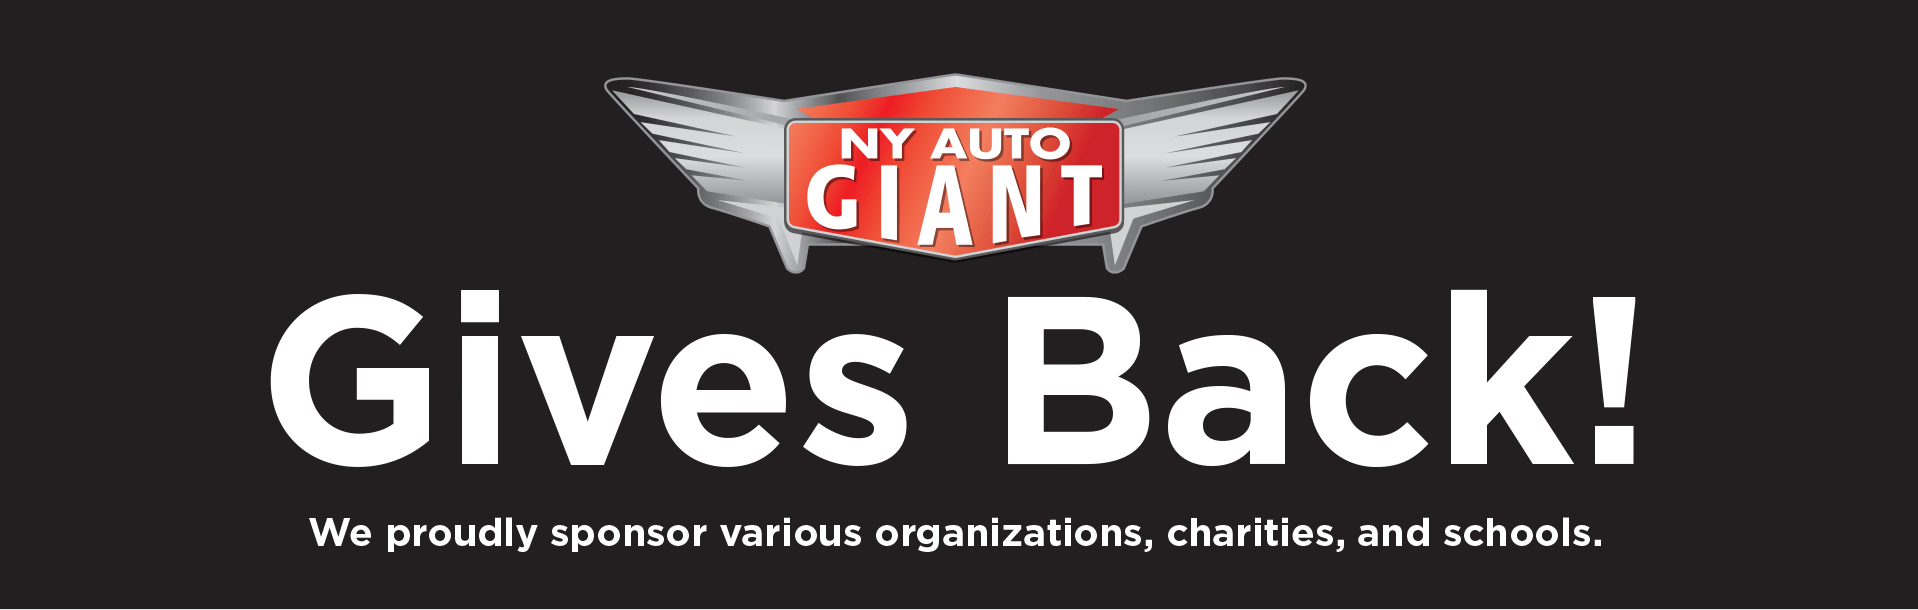 ny auto giant gives back